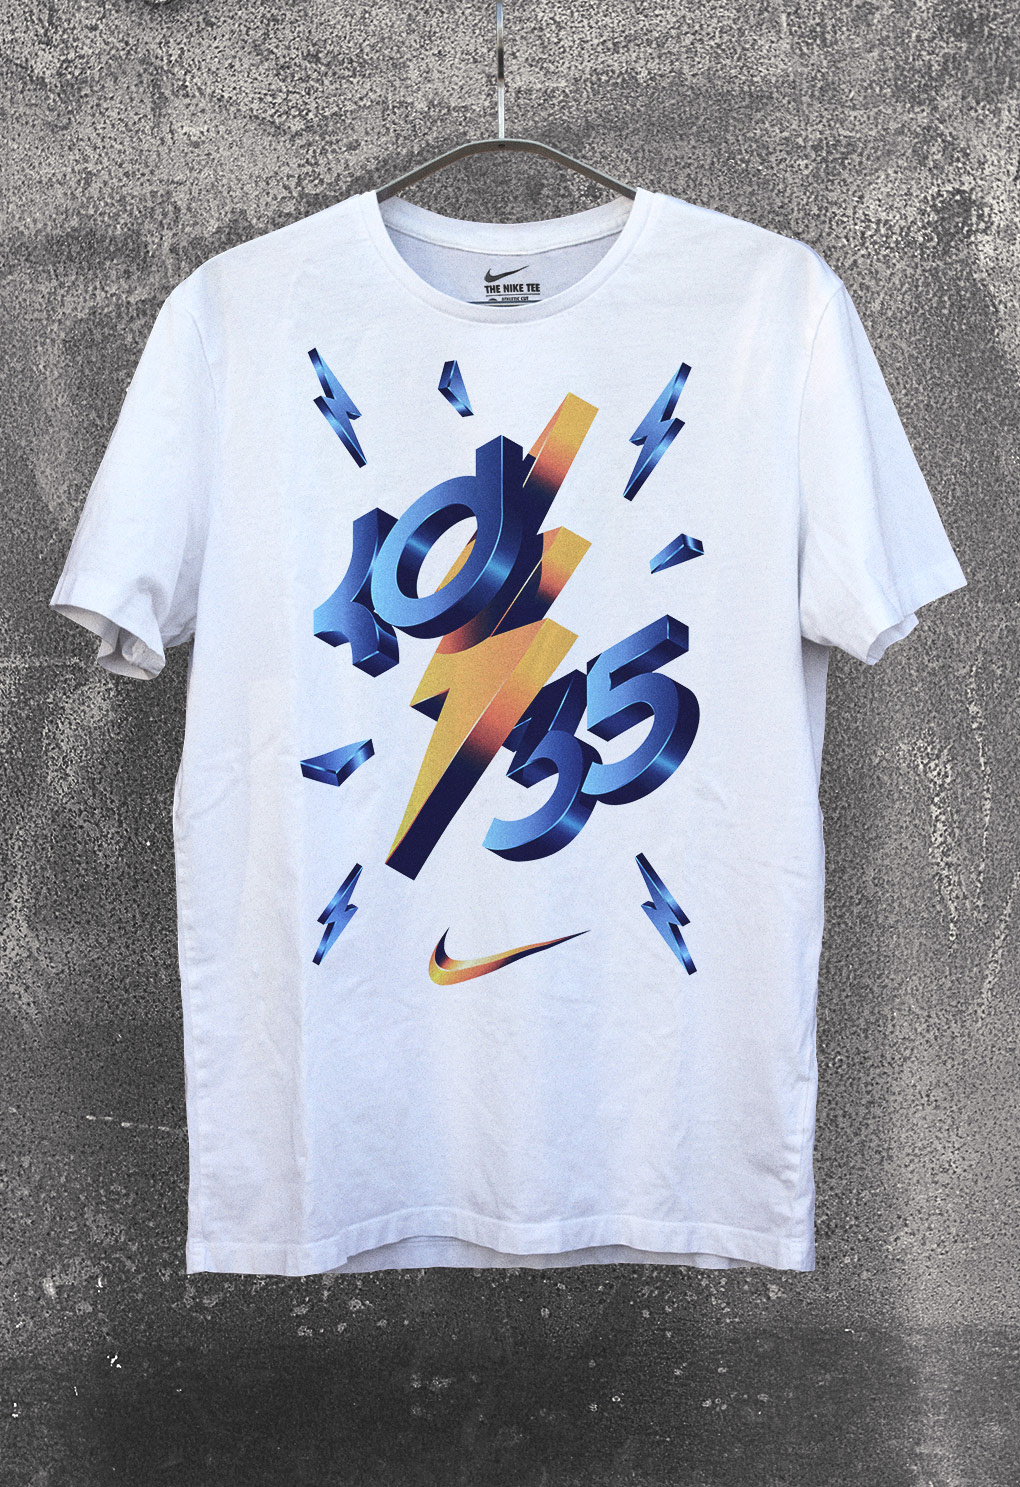 6f23123a7 I was commissioned by Nike Basketball to create this artwork for Kevin  Durant's apparel collection. The creative brief focused on creating a bold  and ...